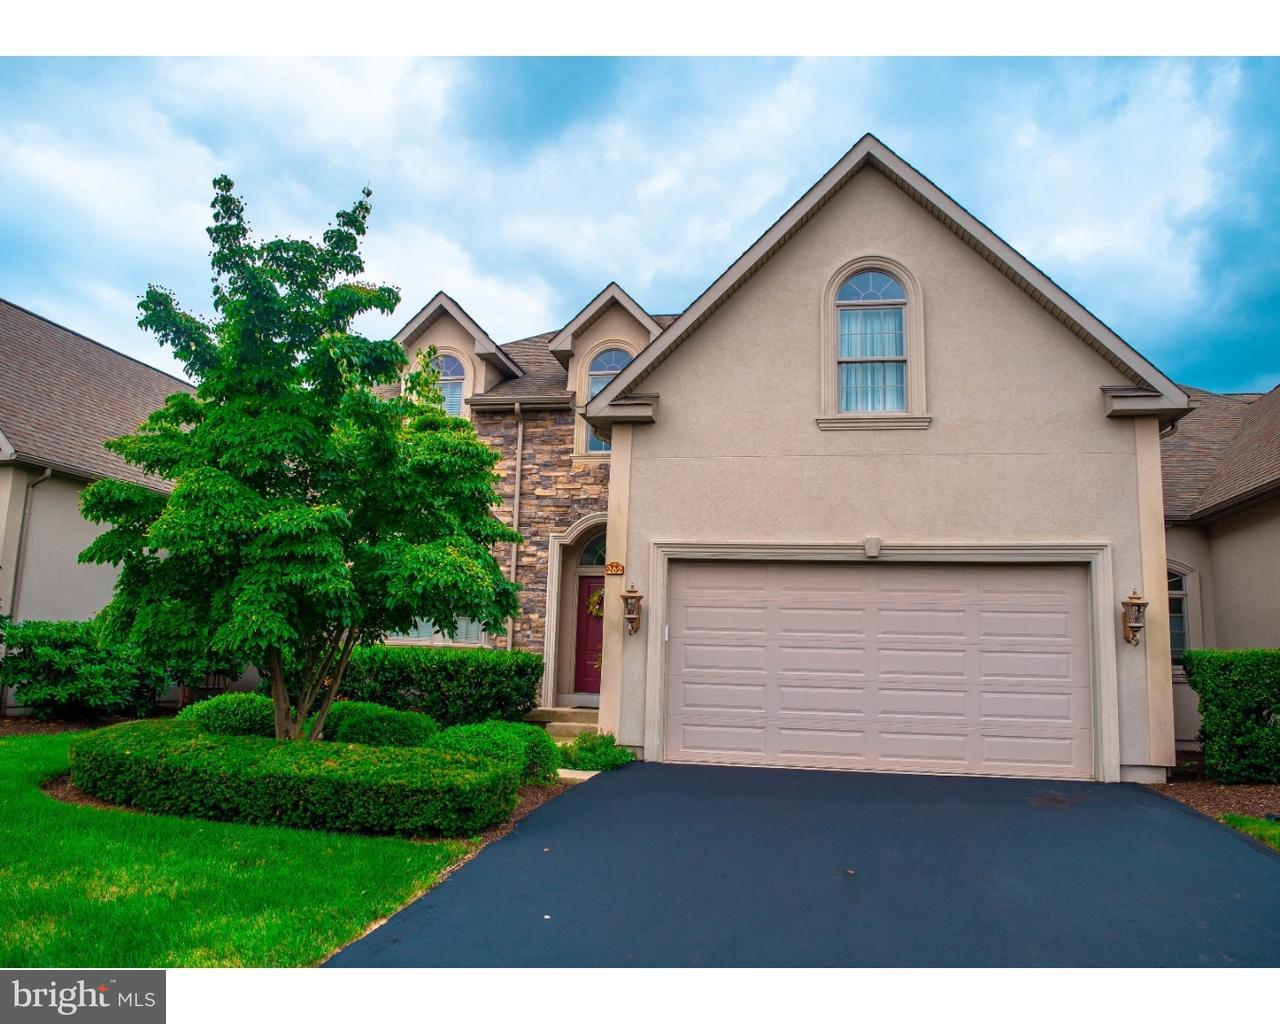 262 COUNTRY CLUB DR, TELFORD - Listed at $469,997, TELFORD